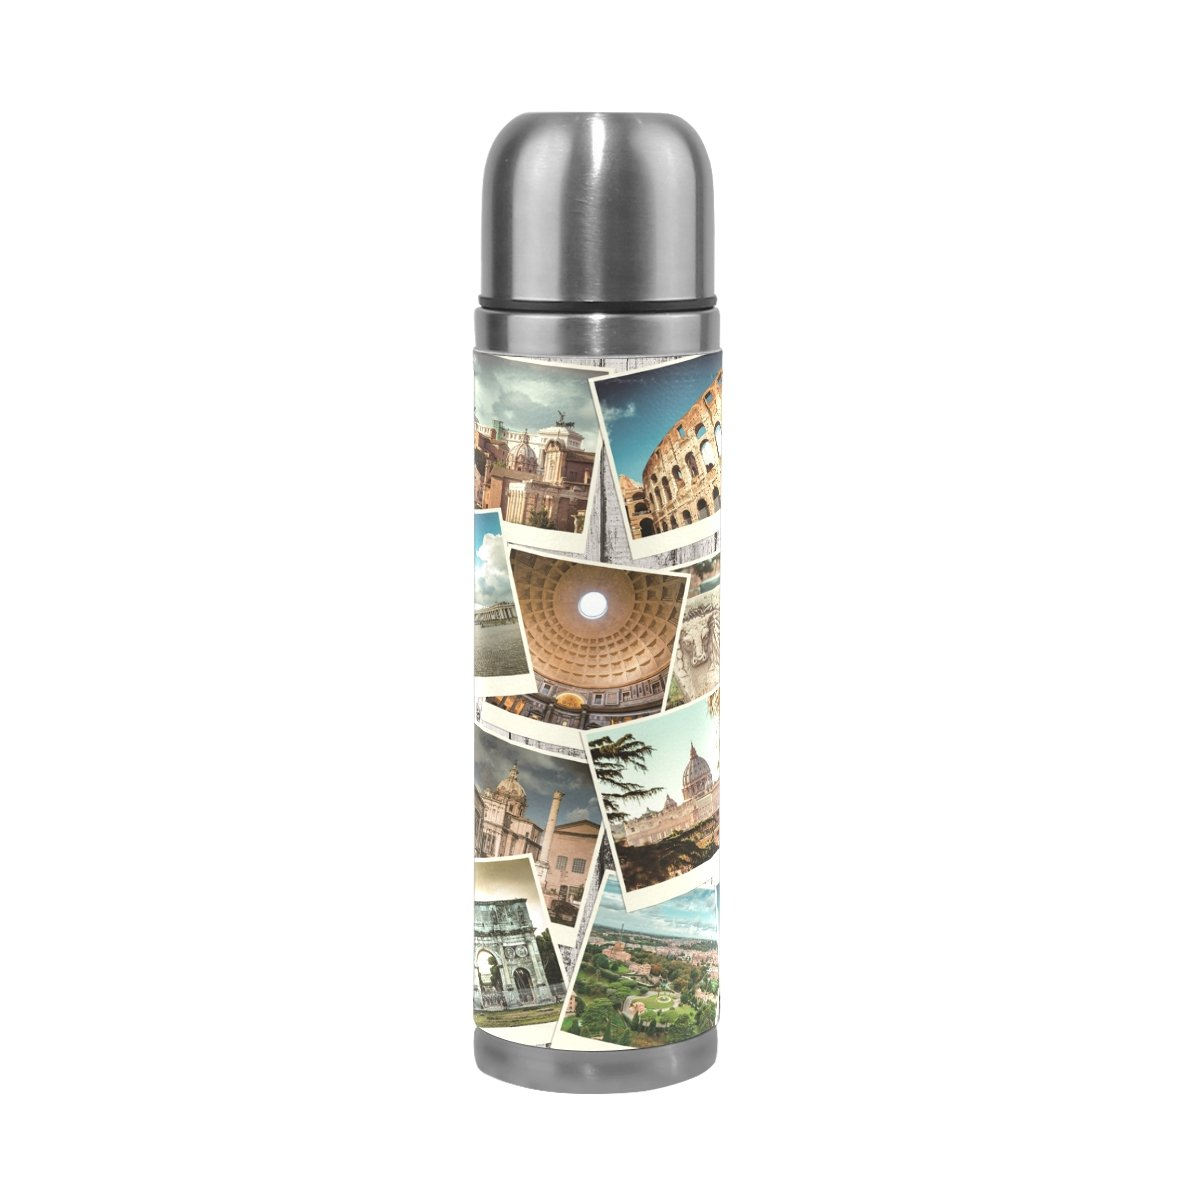 YZGO Vacuum Water Bottle European Rome Italy Photo Wooden Wall Insulated Stainless Steel Coffee Thermal Mug Cup Travel Unique Custom Birthday Gift